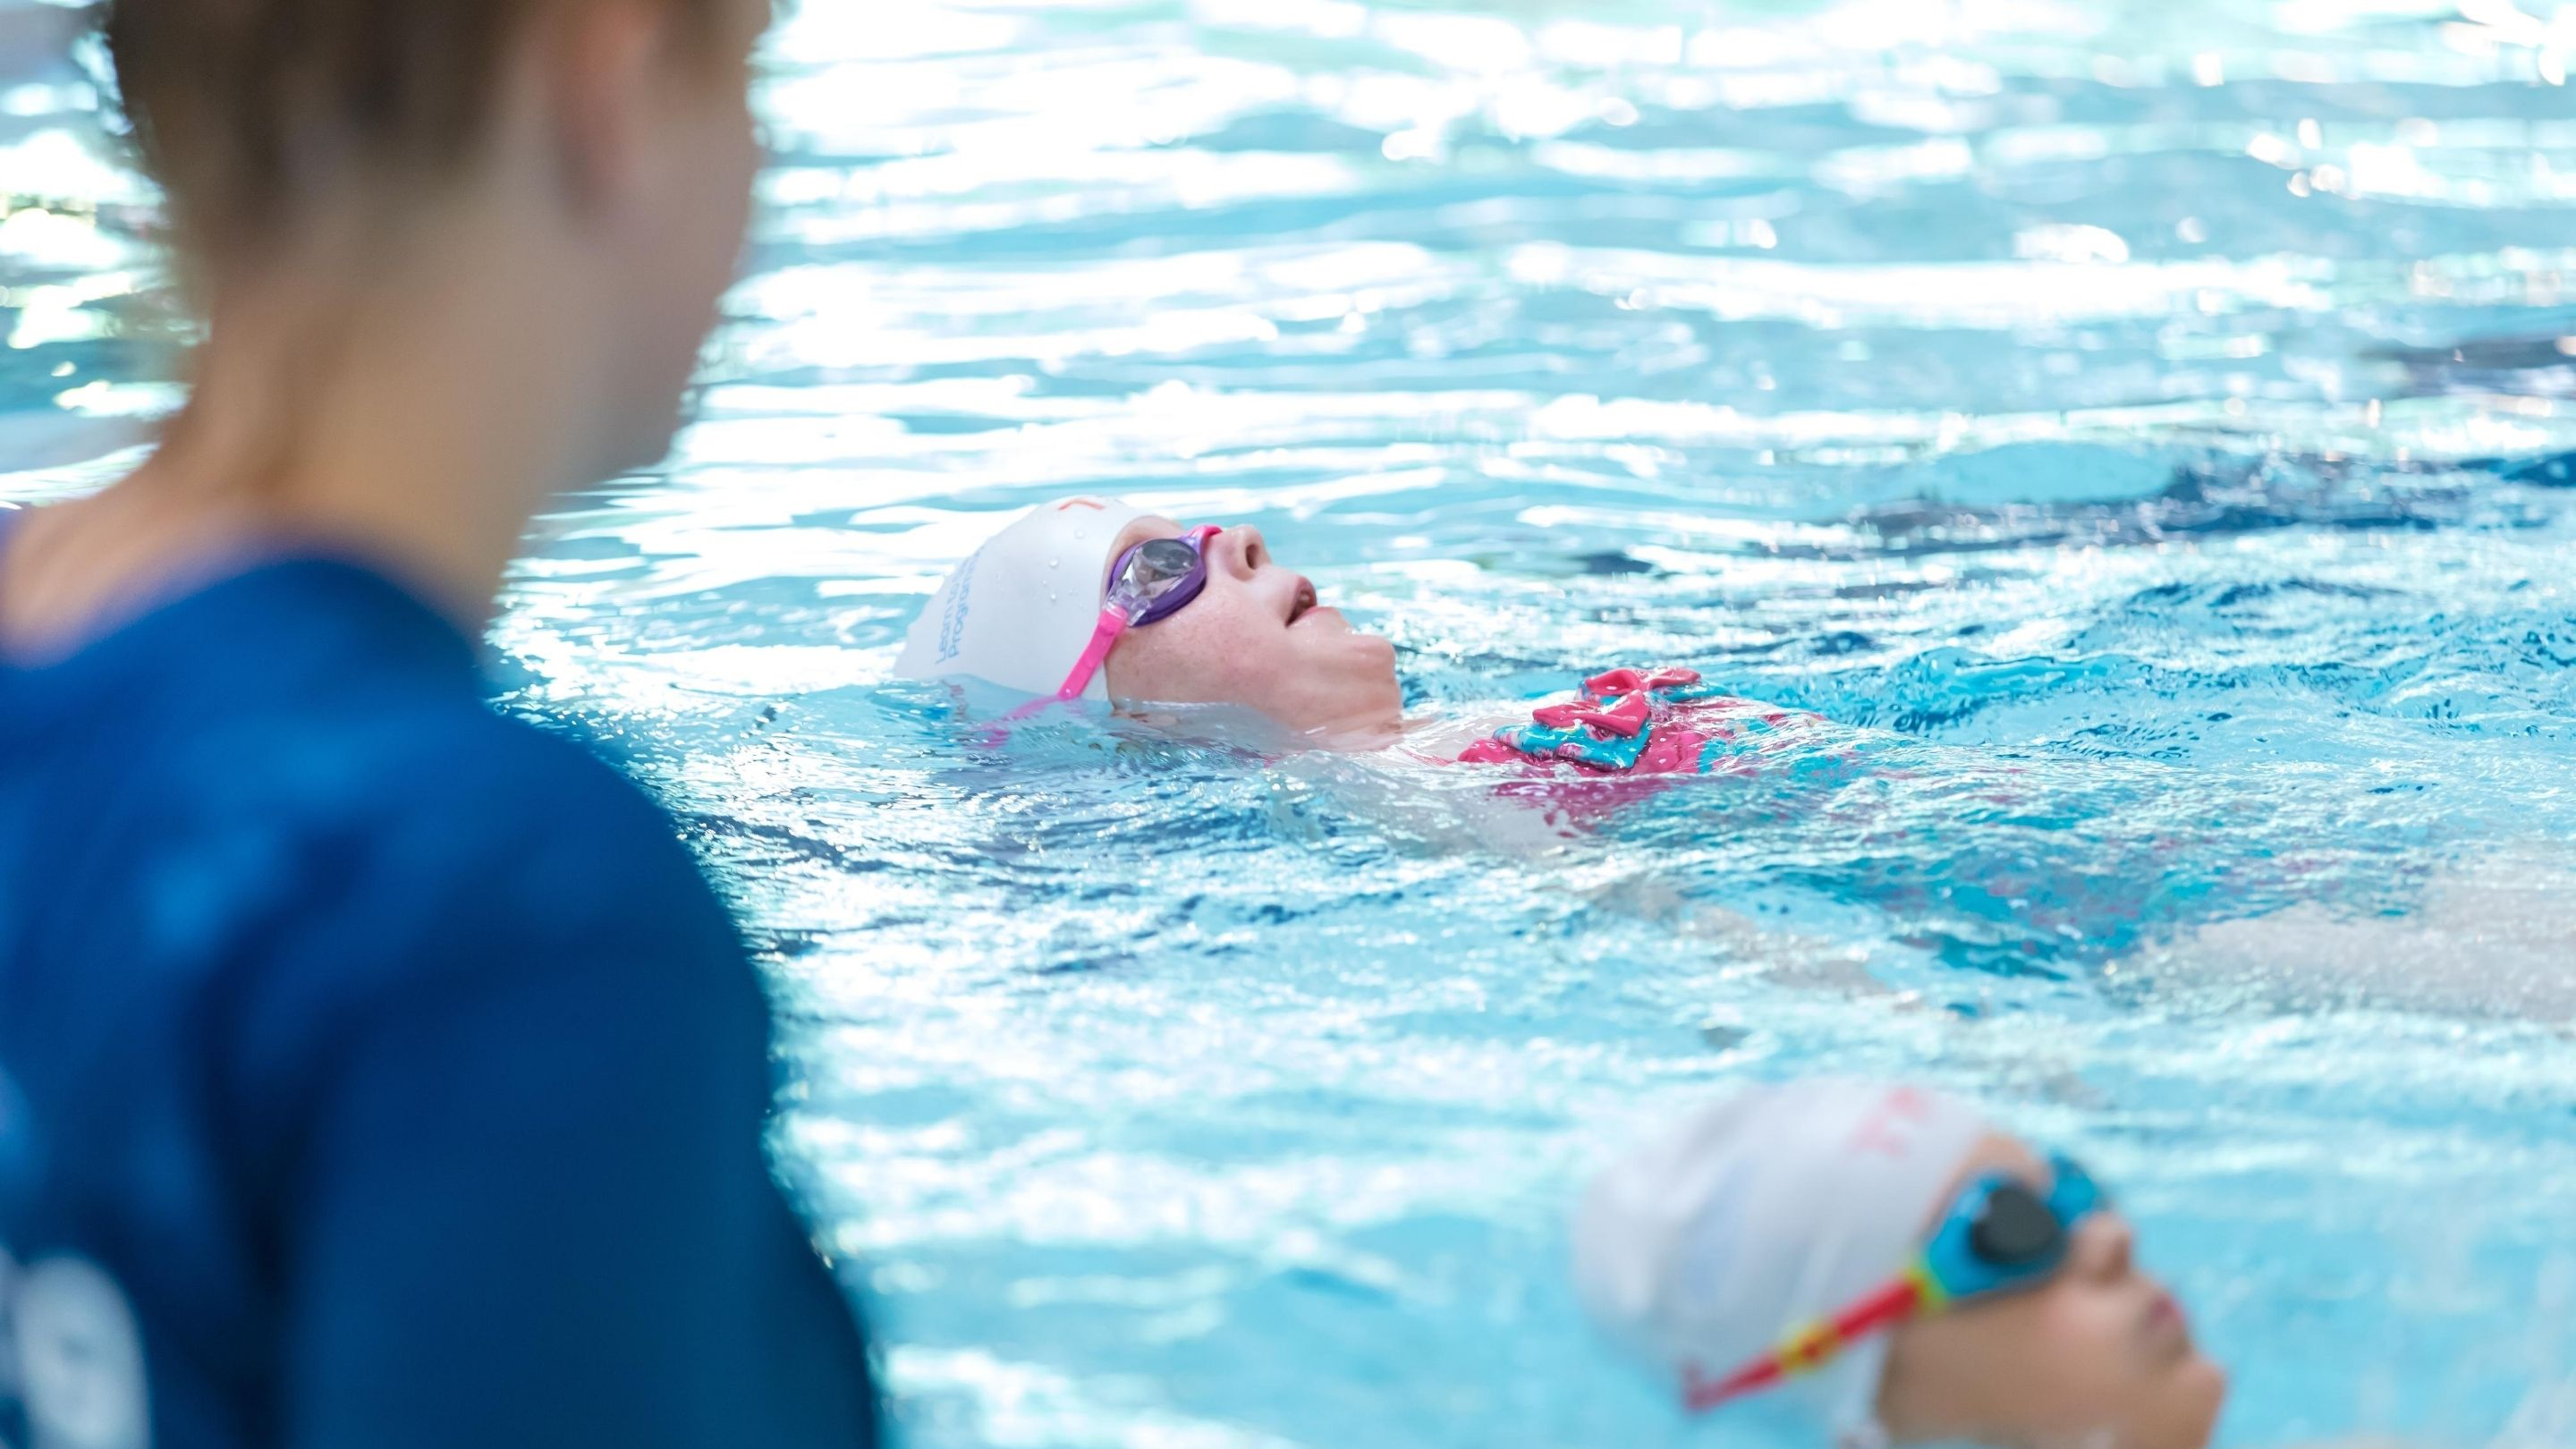 Introduction to Deaf Awareness and using British Sign Language in Aquatics